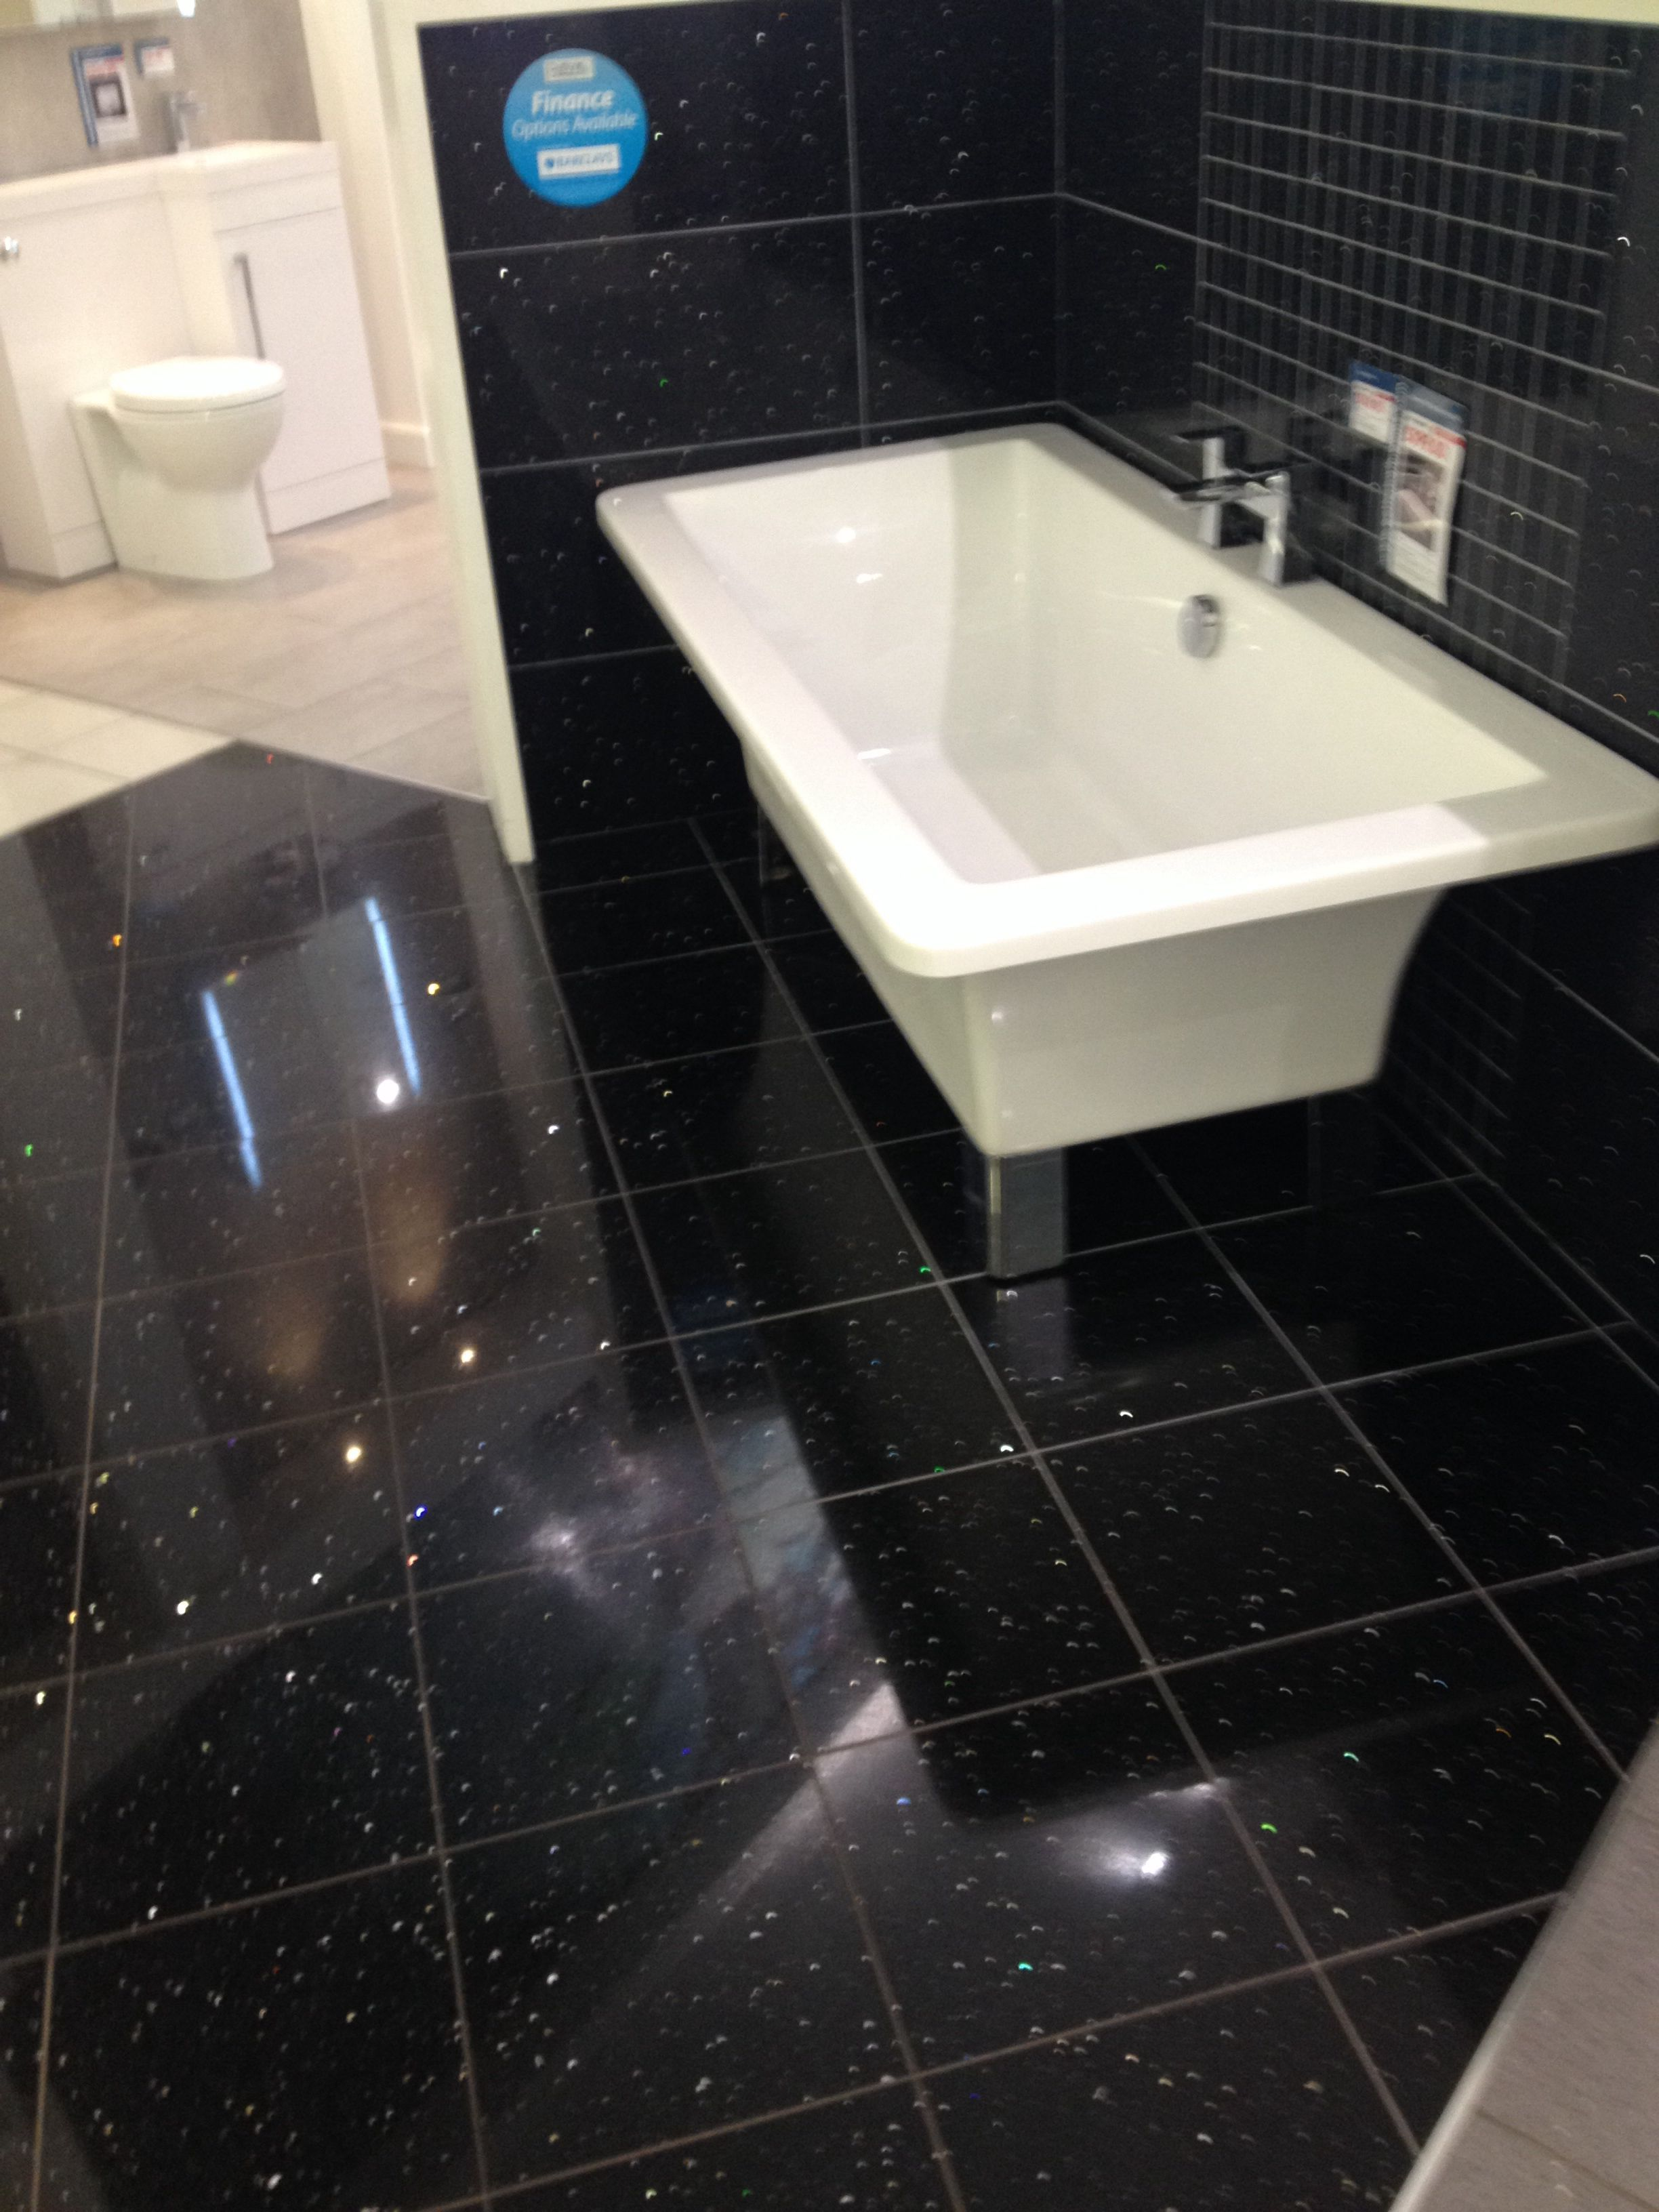 Black Sparkly Tiles Remodeling Pinterest Sparkly